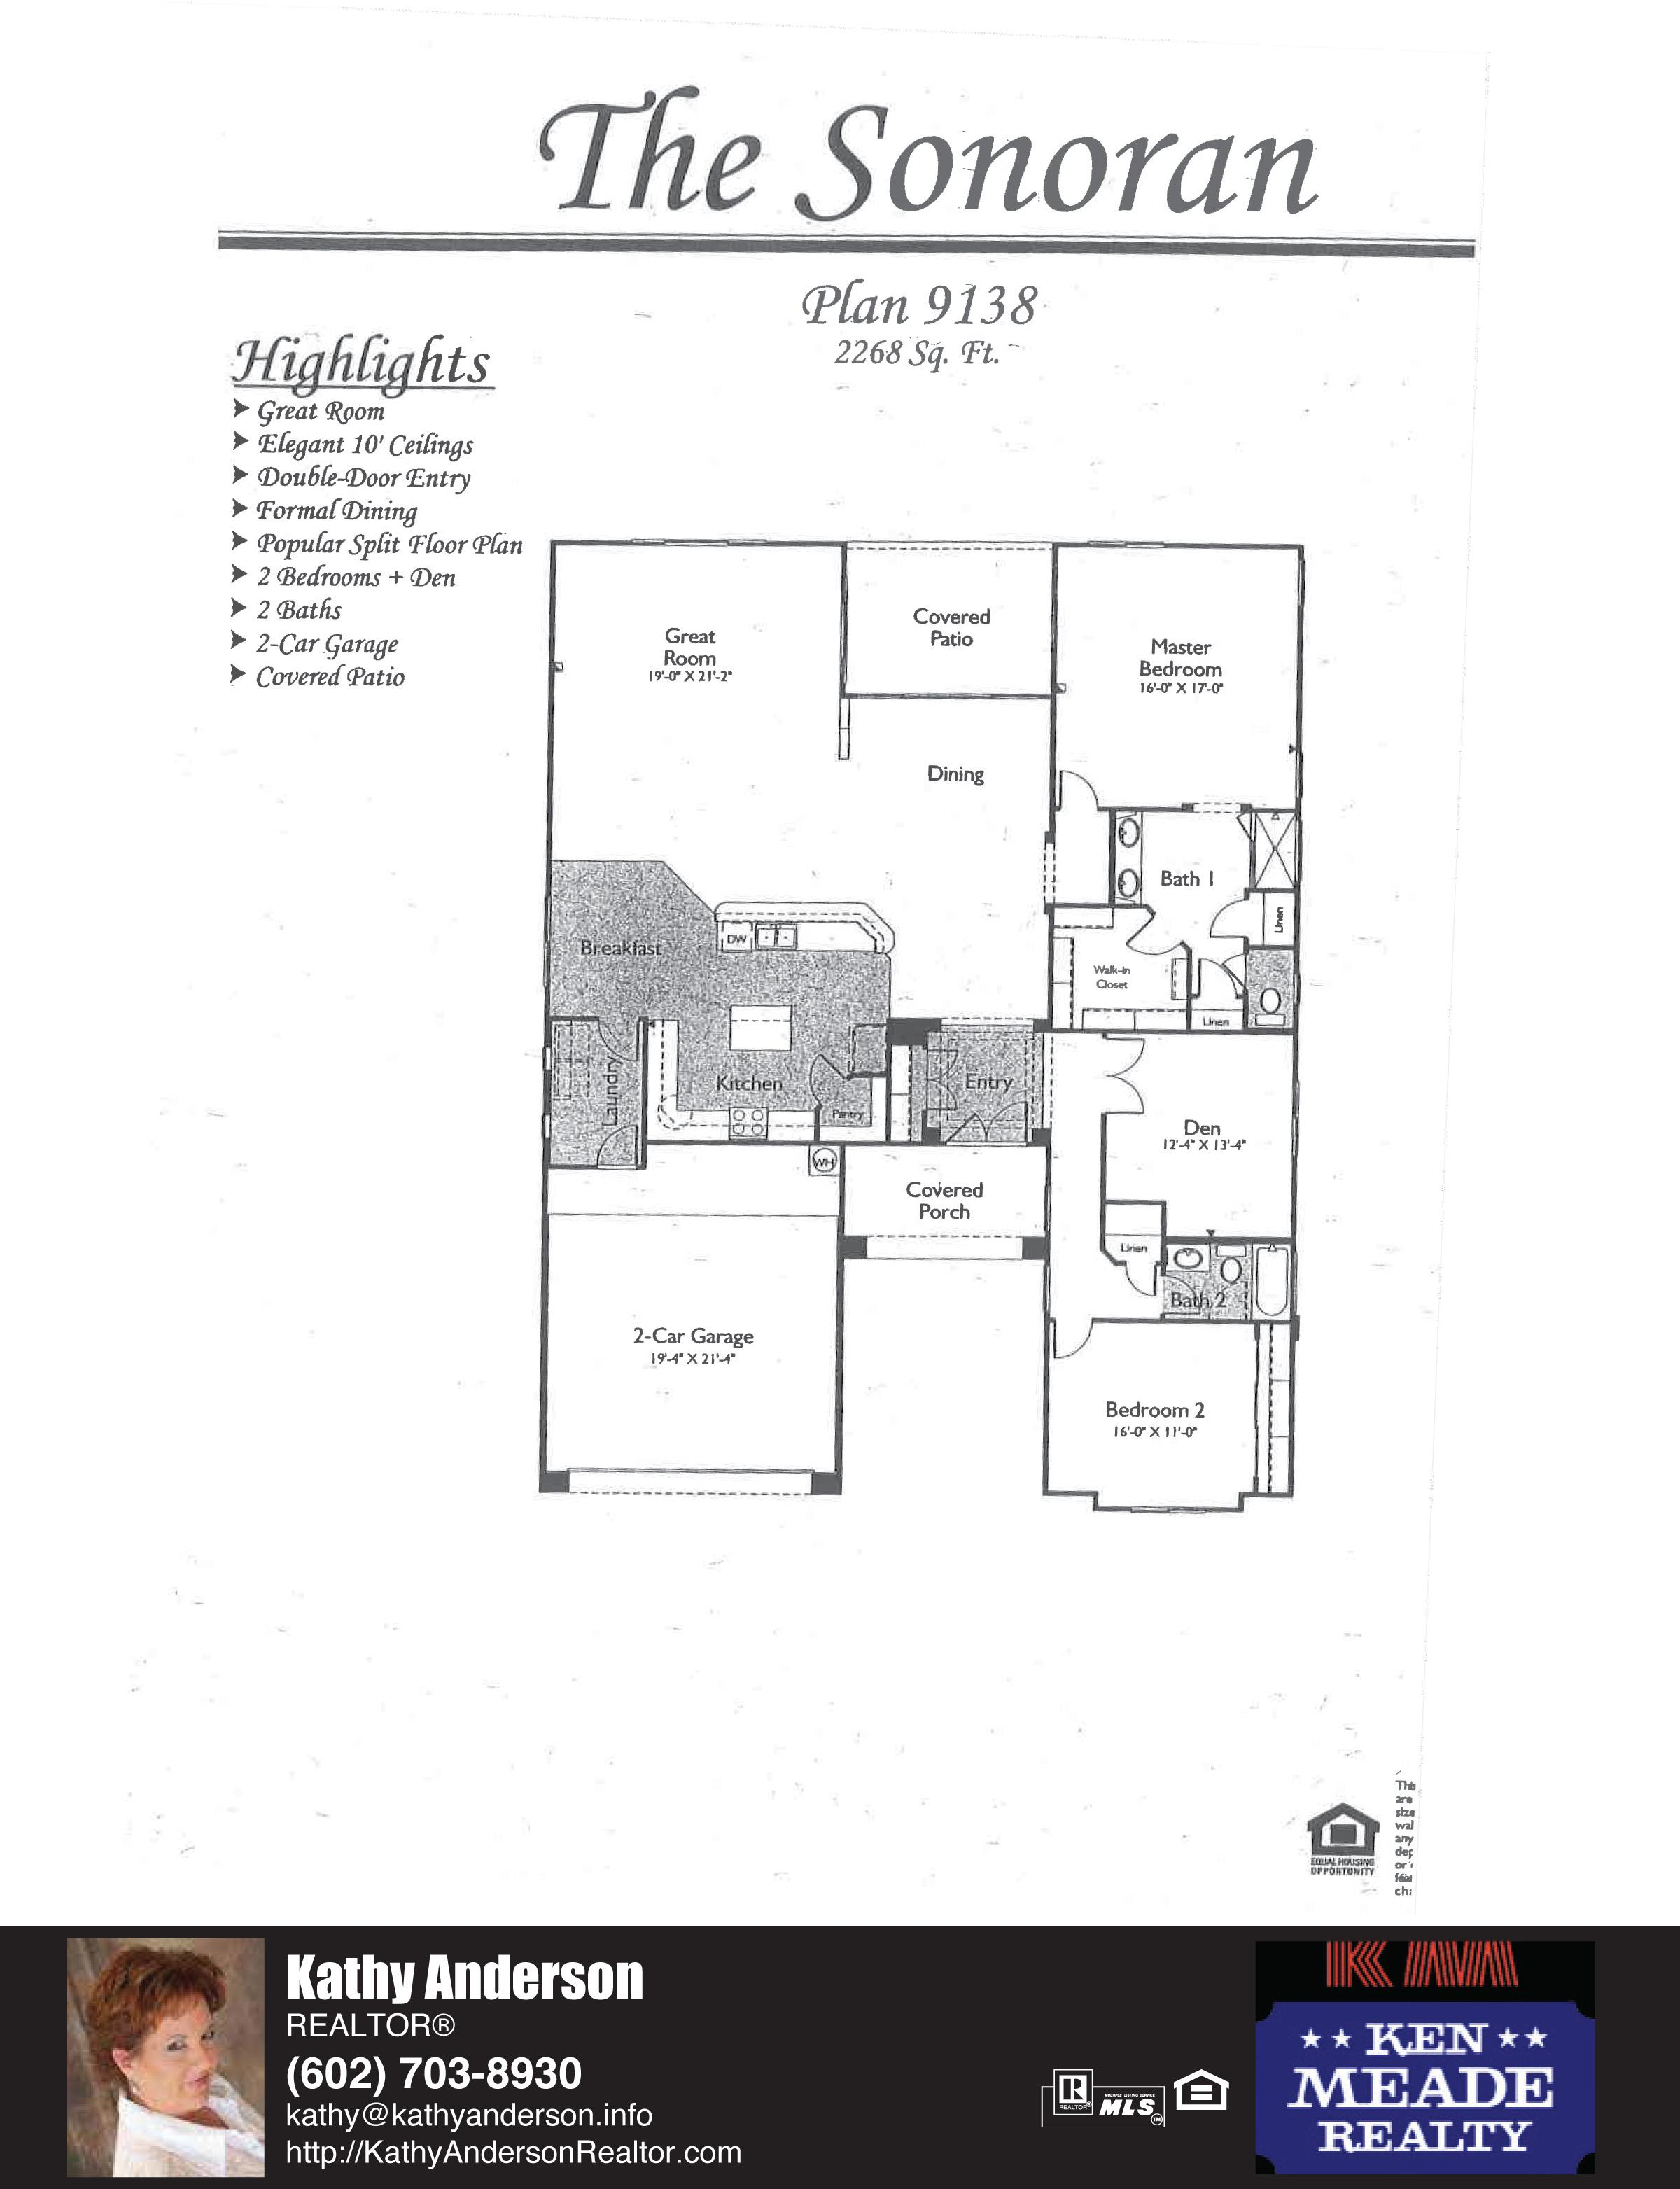 Arizona Traditions Sonoran Floor Plan Model Home Plans Floorplans Models in Surprise Arizona AZ Top Ken Meade Realty Realtor agent Kathy Anderson